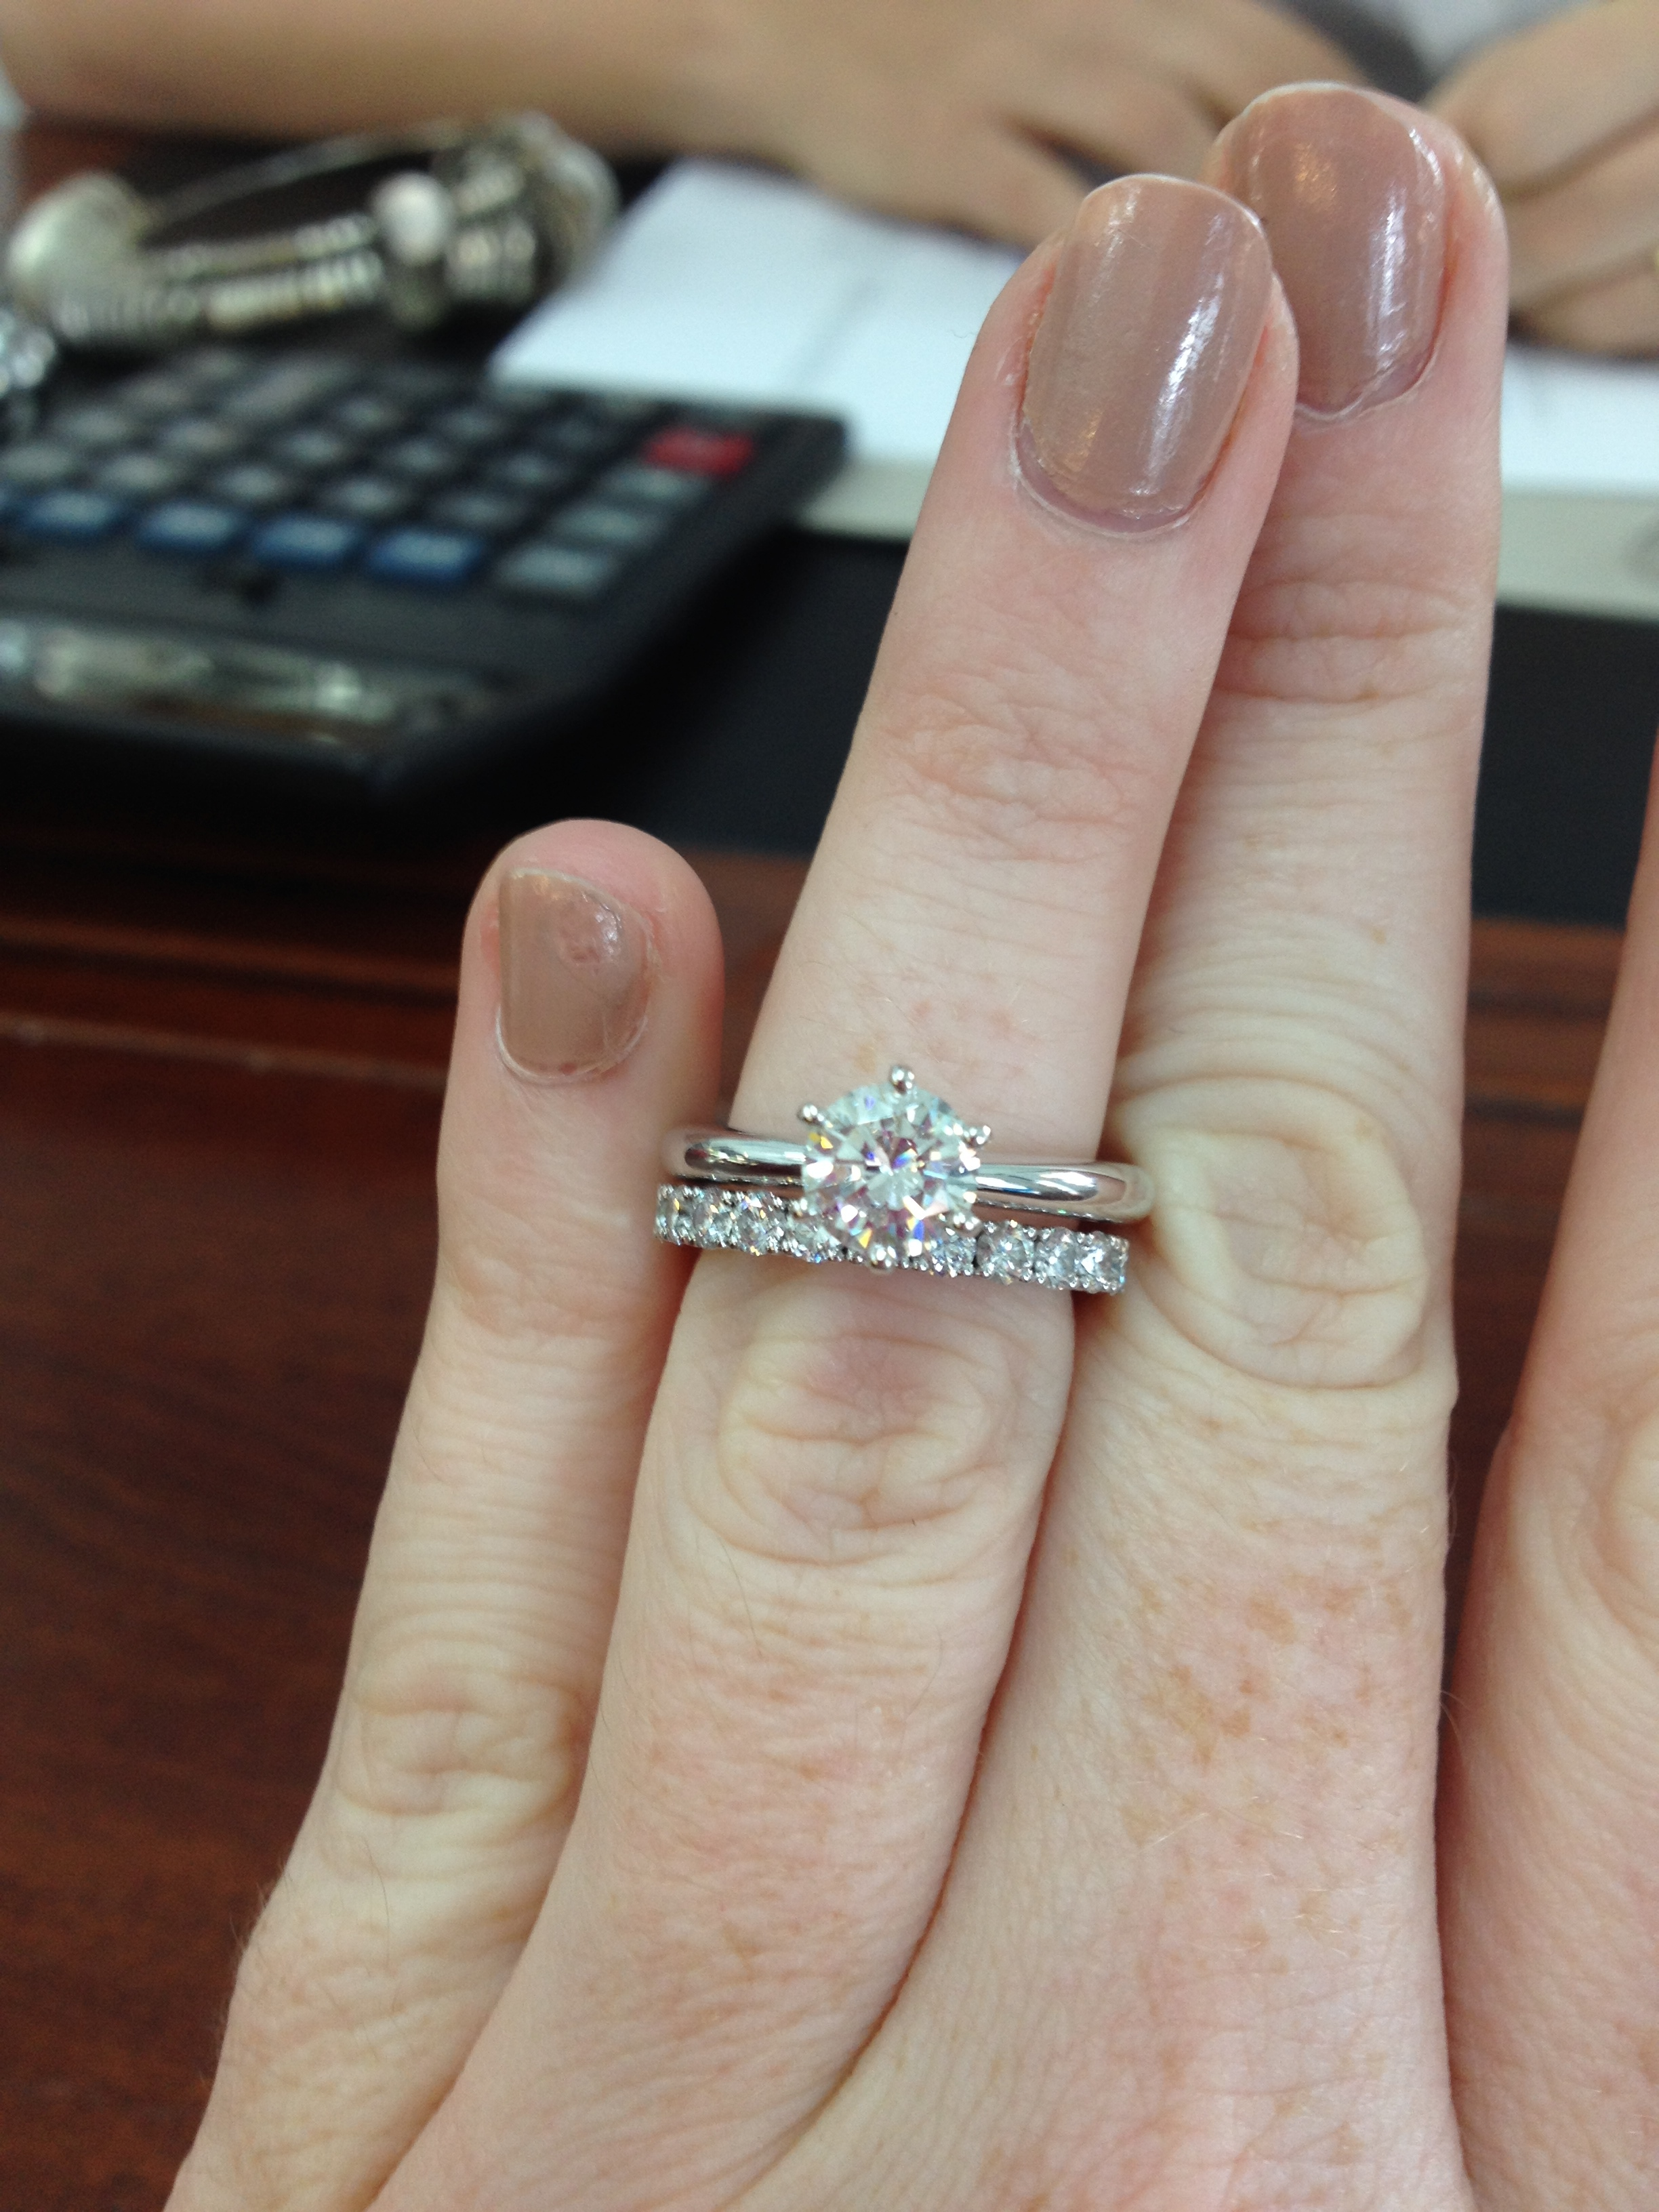 solitaire engagement ring bees show me your wedding bands wedding ring band